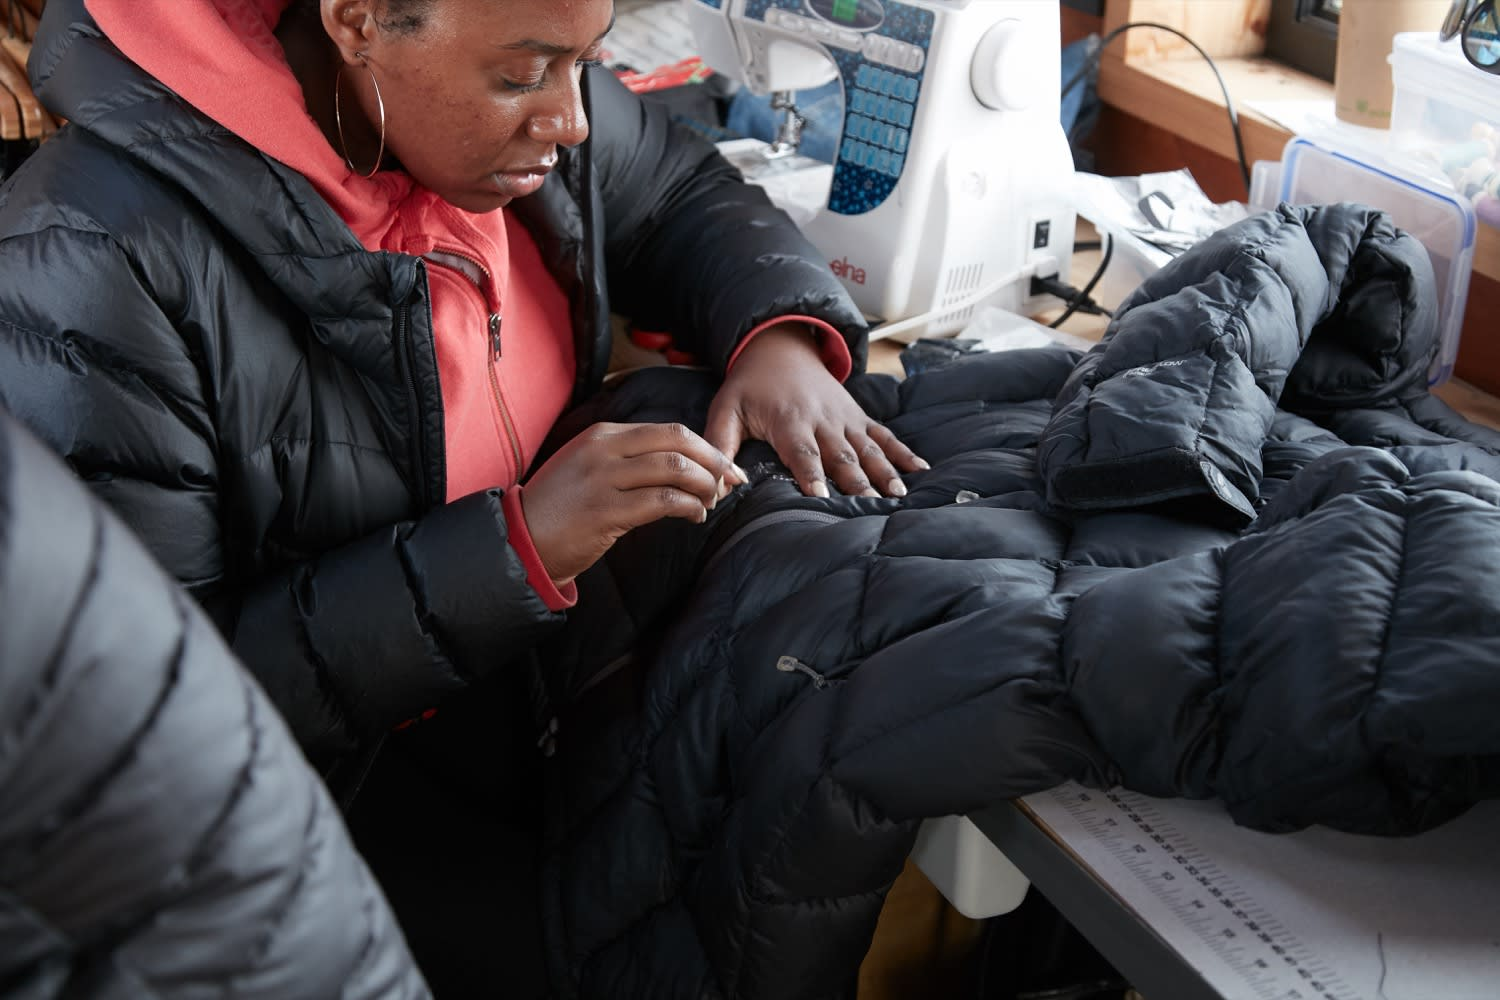 Patagonia Worn Wear seamstress repairing a down coat on Worn Wear Summer Tour 2019